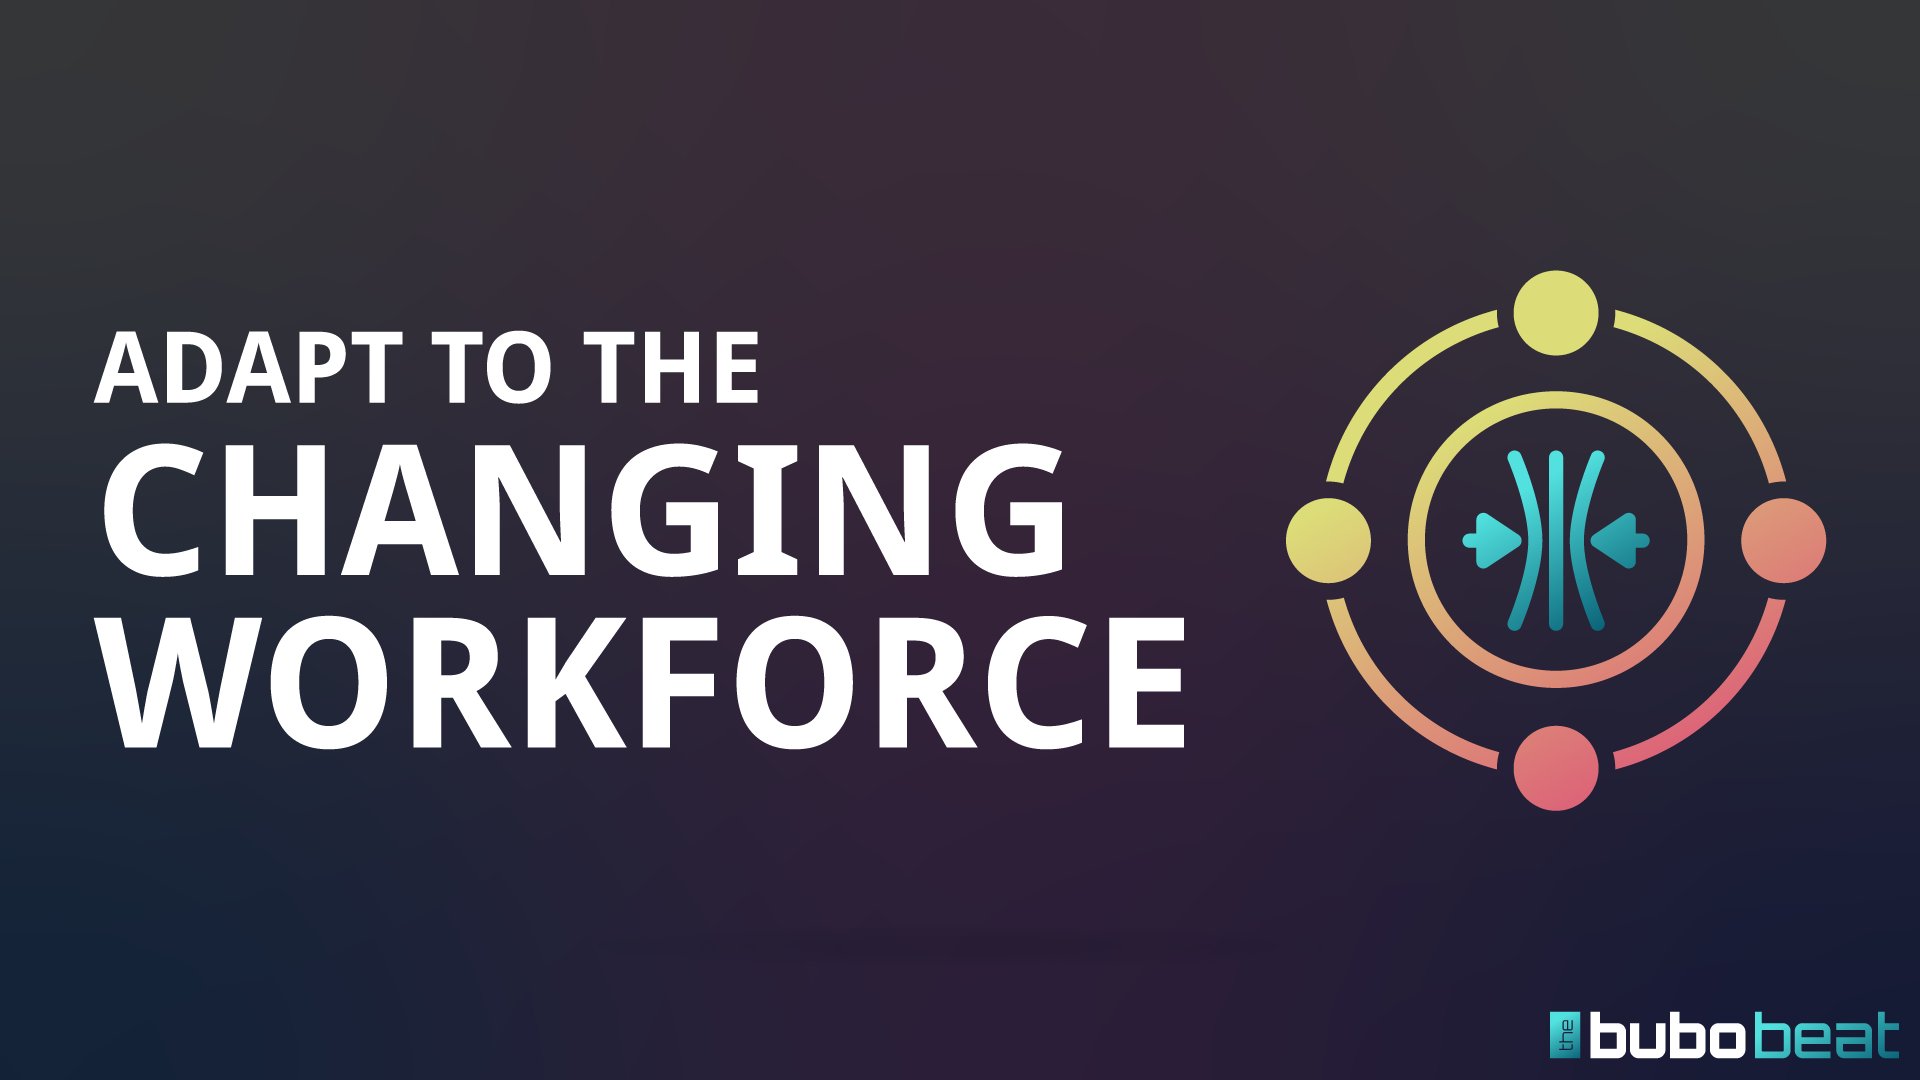 Adapt to the changing workforce